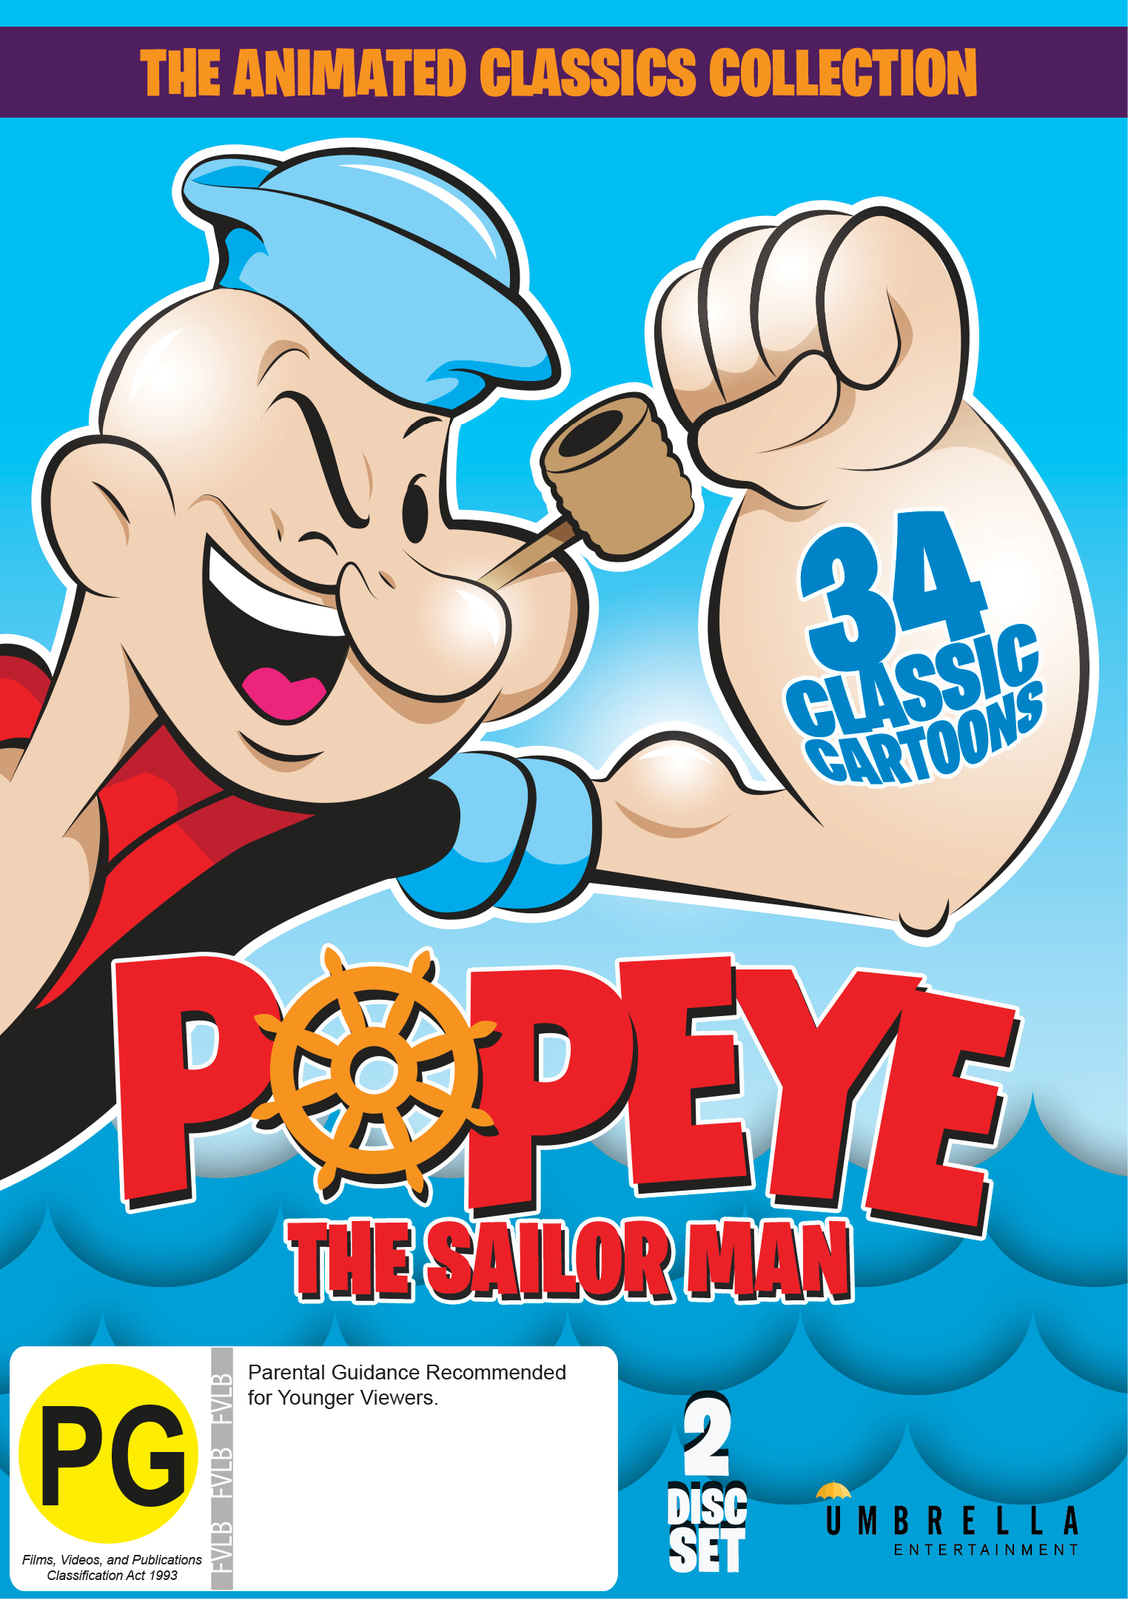 Popeye the Sailor Man: the Animated Classics Collection on DVD image